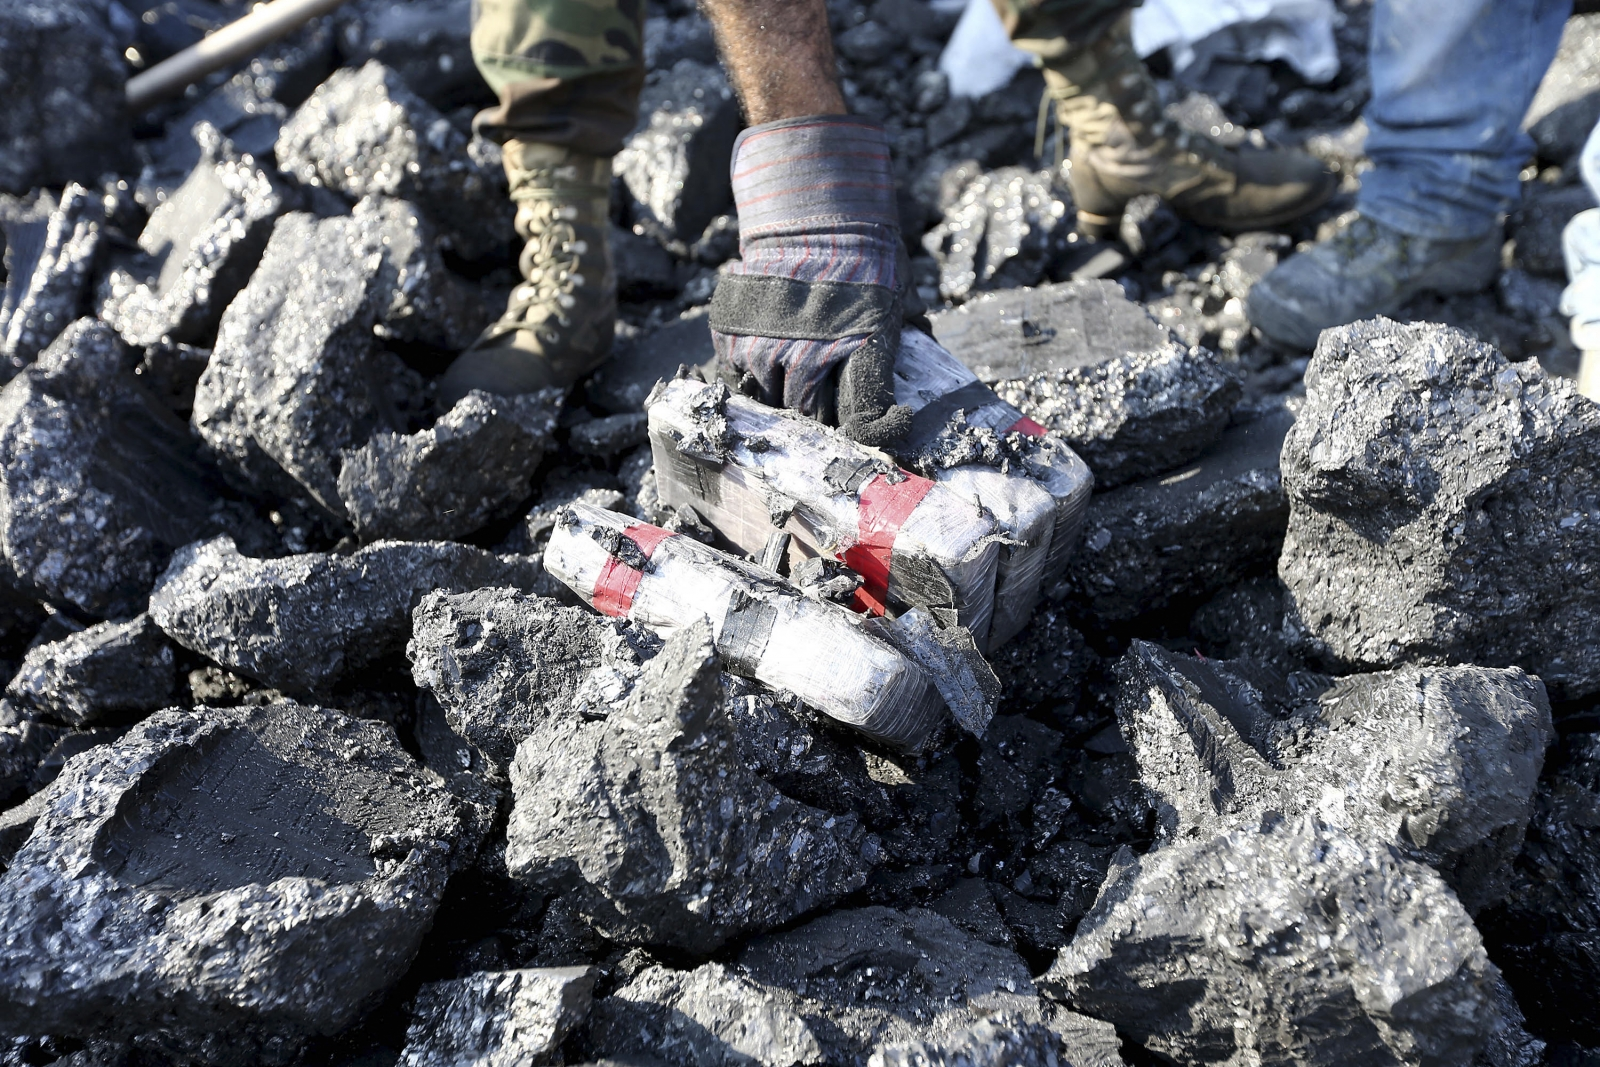 Cocaine seized by police in Huanchaco, Peru. Packets were concealed in hollowed out coal bricks. (Reuters)